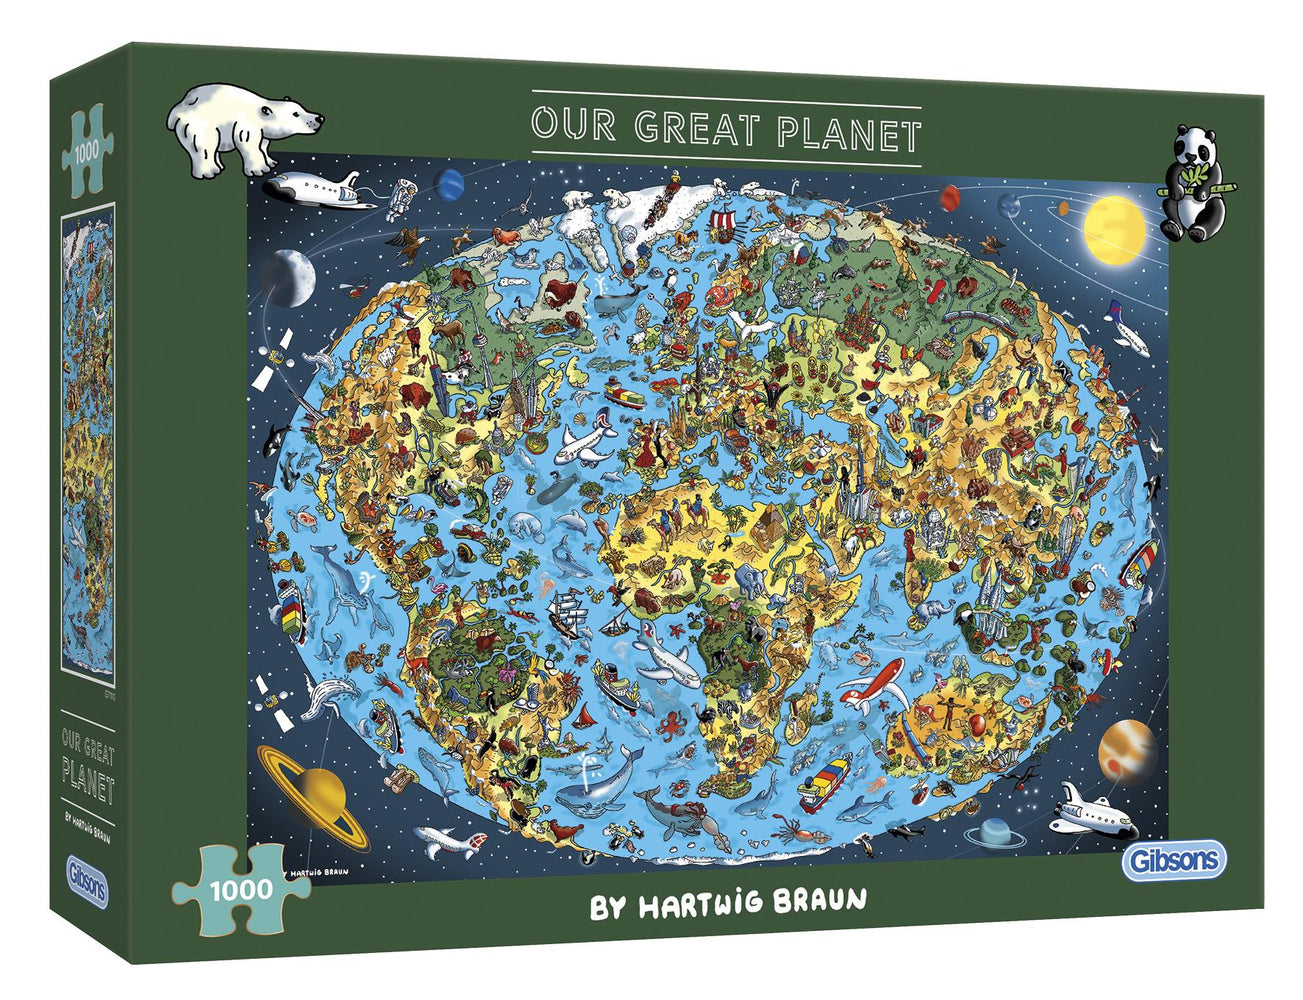 Our Great Planet 1000 Piece Jigsaw Puzzle